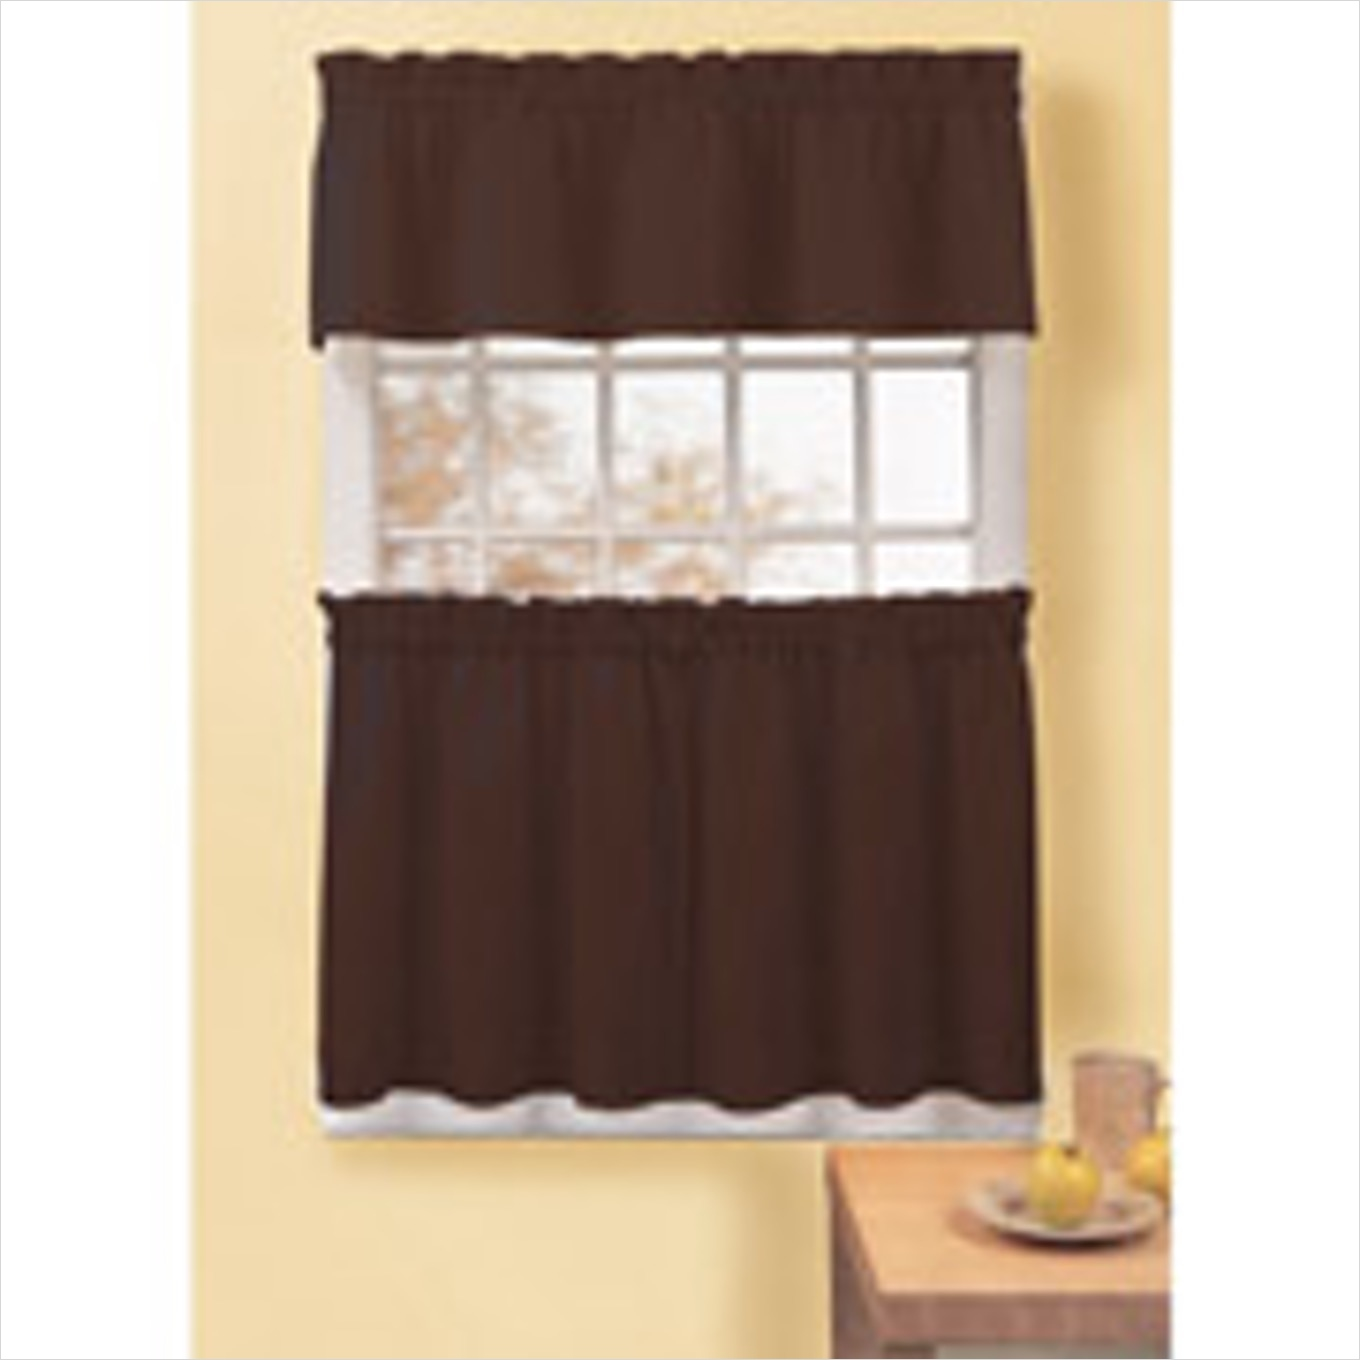 41 Perfect Farmhouse Country Kitchen Curtain Valances 67 Walmart Curtains and Drapes Tuscany Kitchen Farmhouse Country Curtain Valances Also Walmart 7